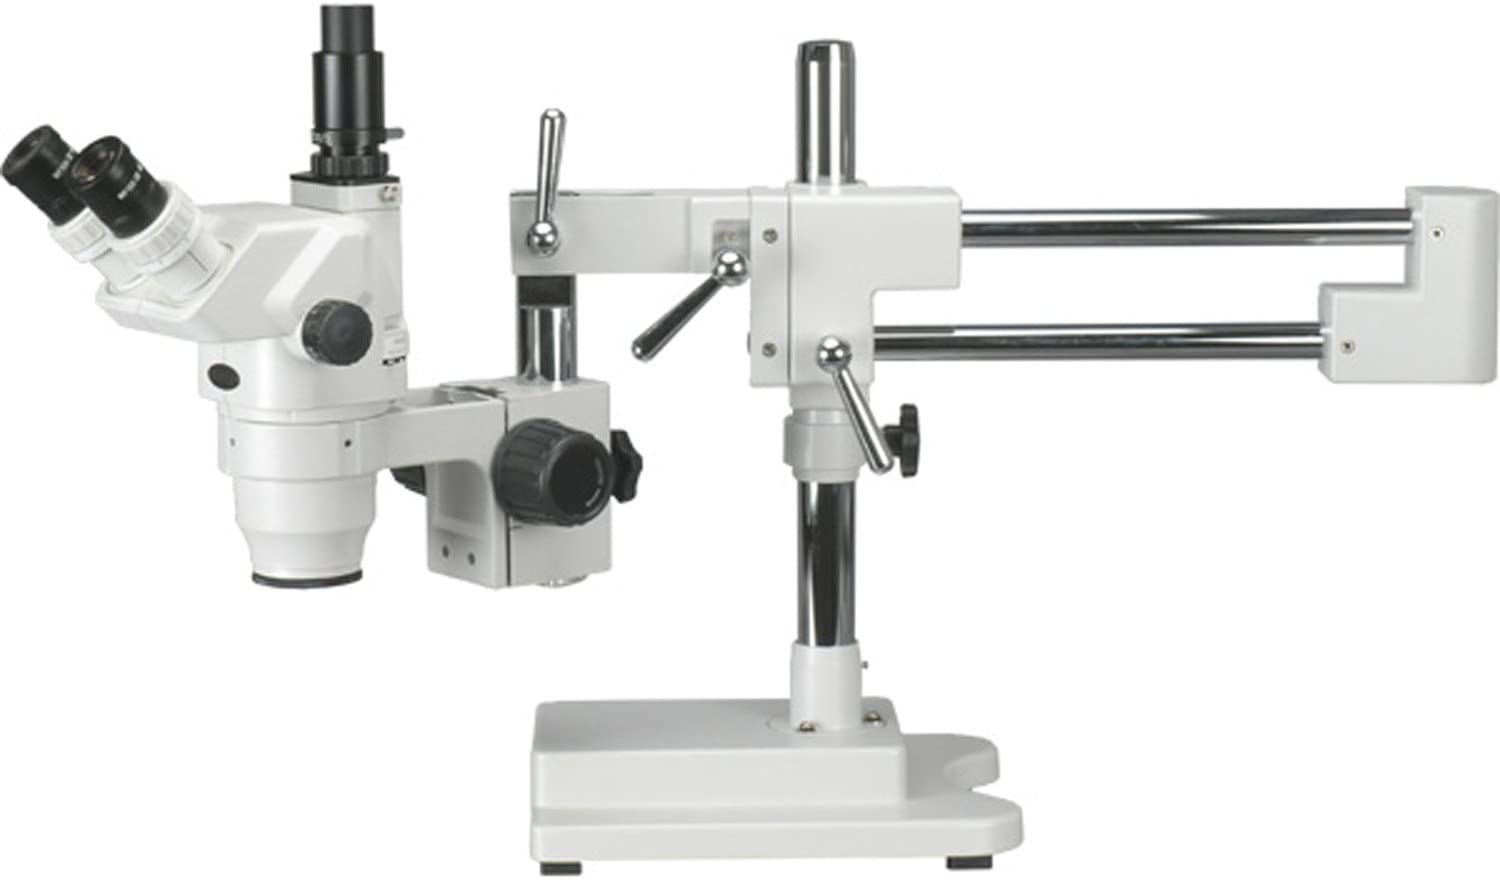 AmScope ZM-4T Professional Trinocular Stereo Zoom Microscope, EW10x Eyepieces, 6.7X-45X Magnification, 0.67X-4.5X Zoom Objective, Ambient Lighting, Double-Arm Boom Stand